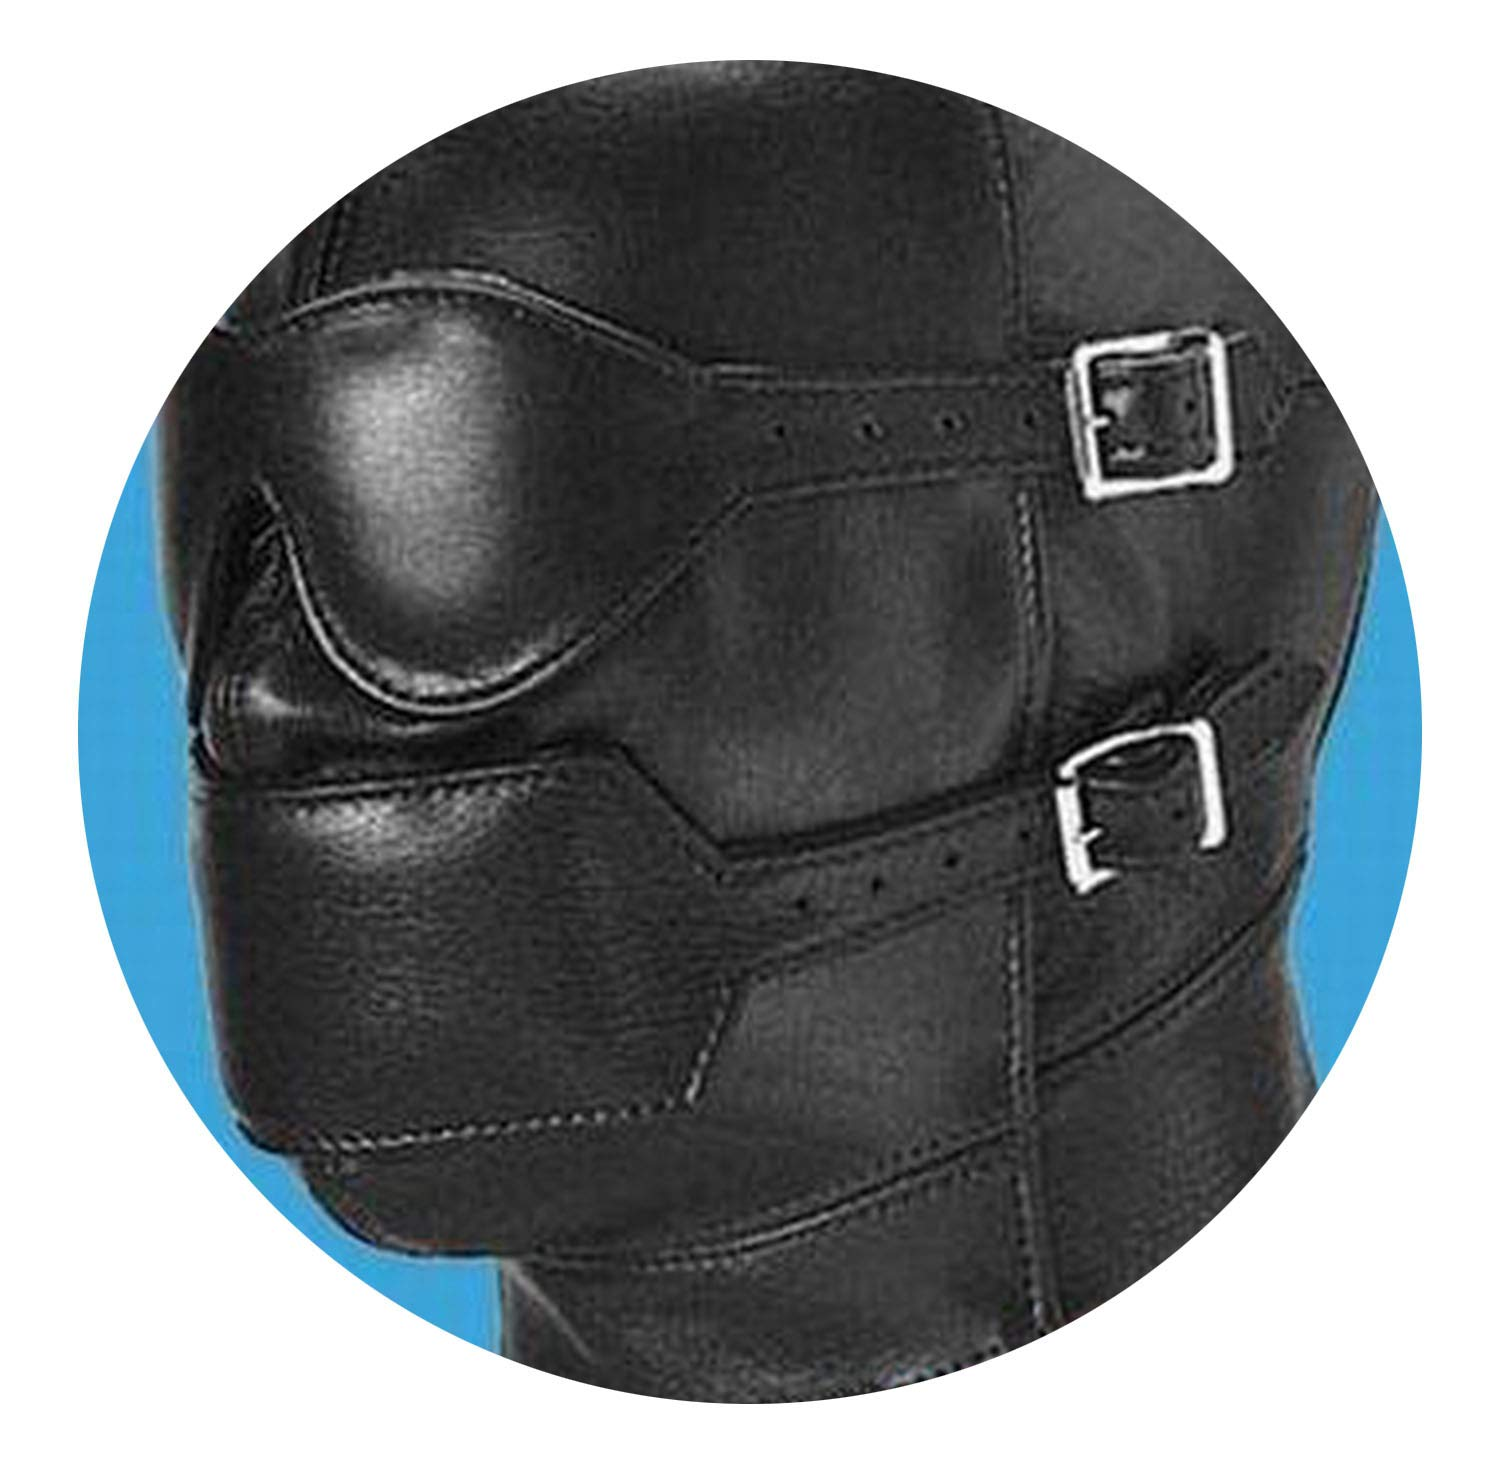 Amazon.com: Soft Leather Bondage Face Mask Eyepatch Gagged Headgear Adult  BDSM Bed Game Set: Health & Personal Care